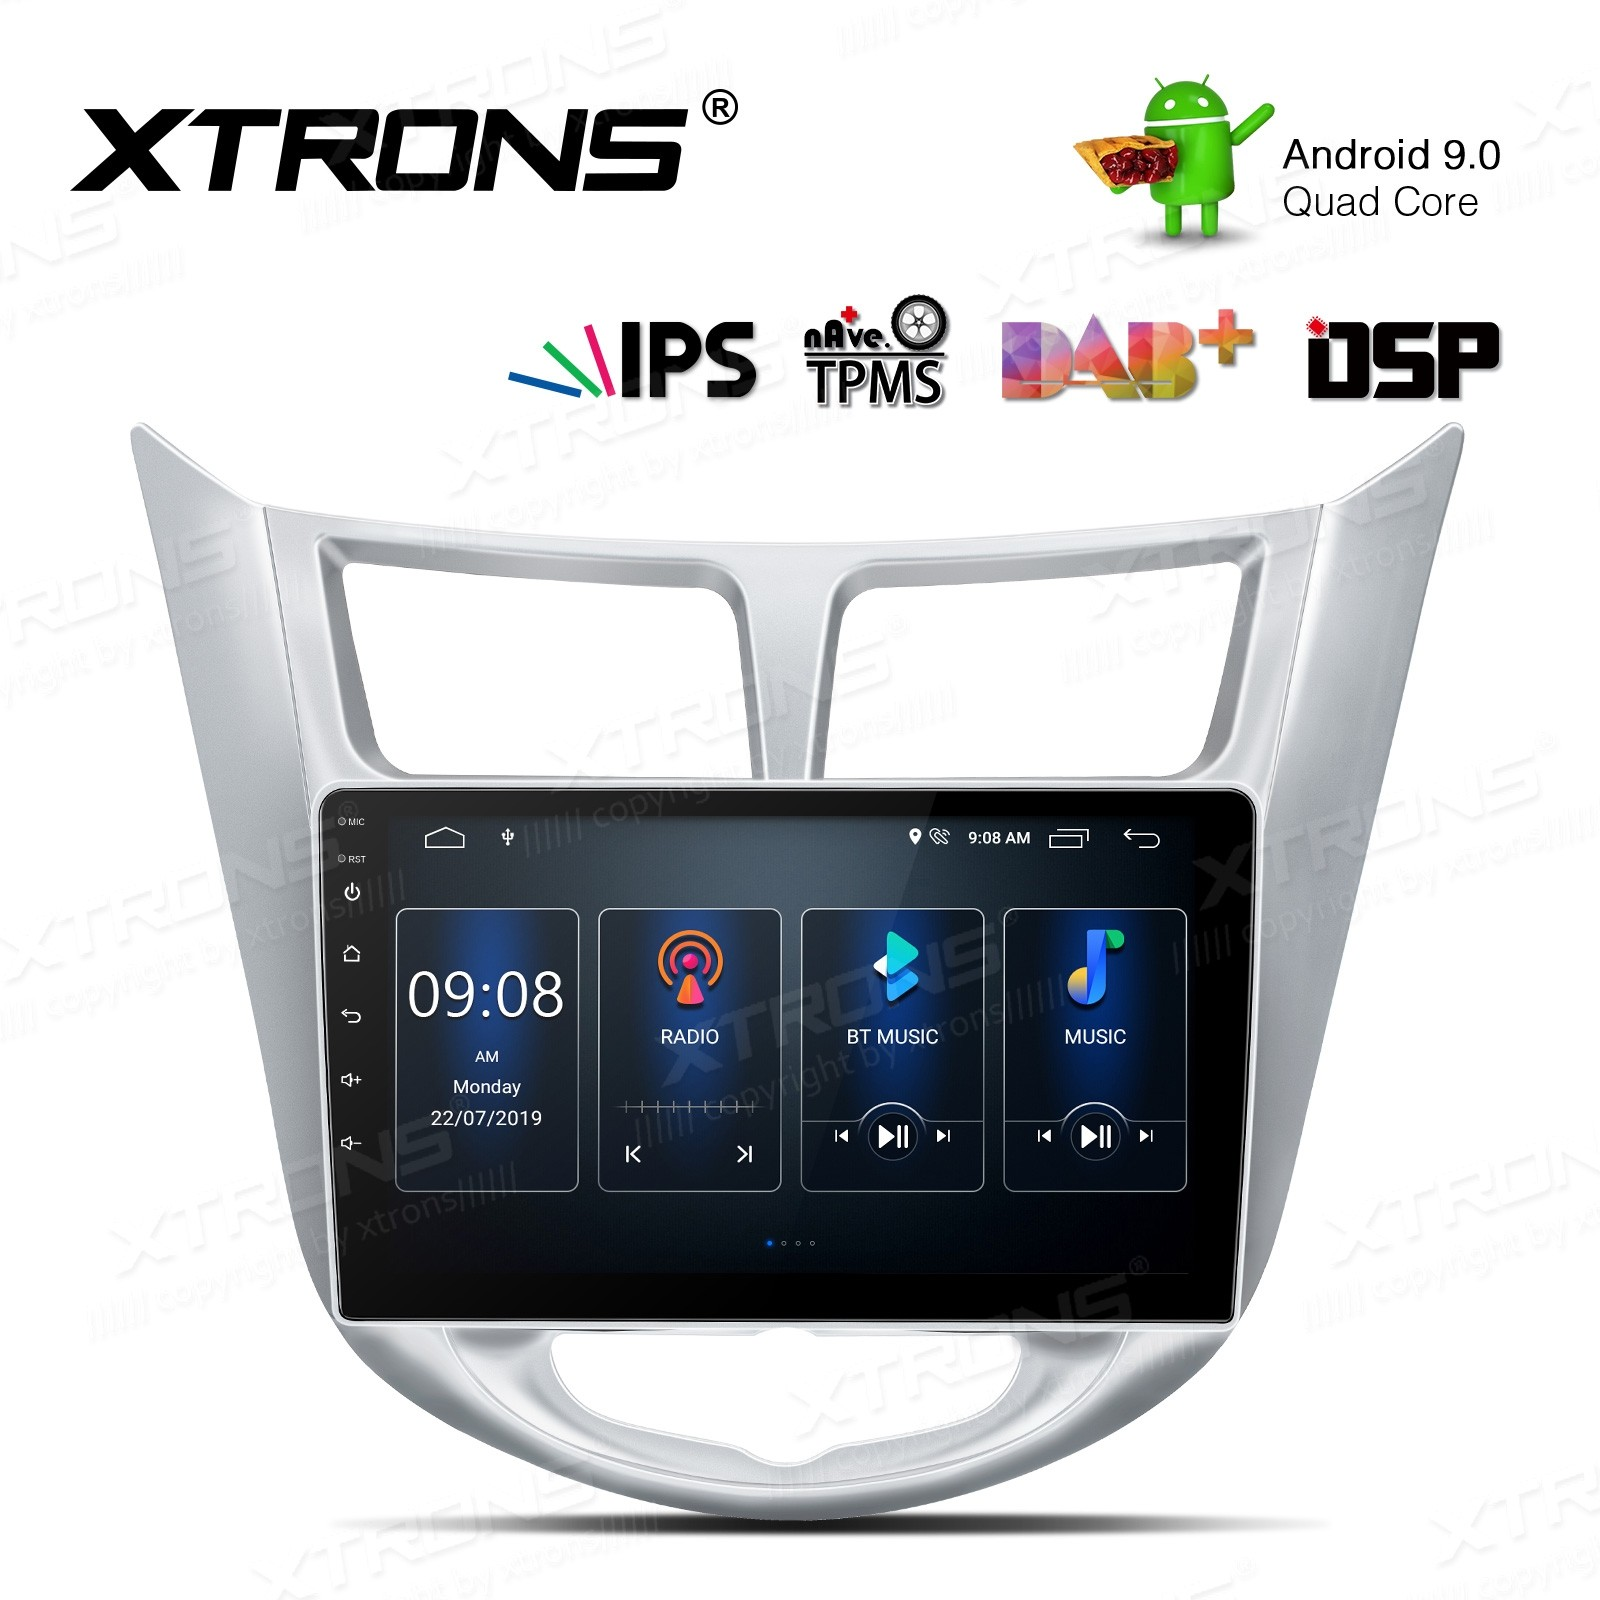 9 inch IPS Screen Android 9.0 Navigation Multimedia Player with Built-in DSP Custom Fit for HYUNDAI